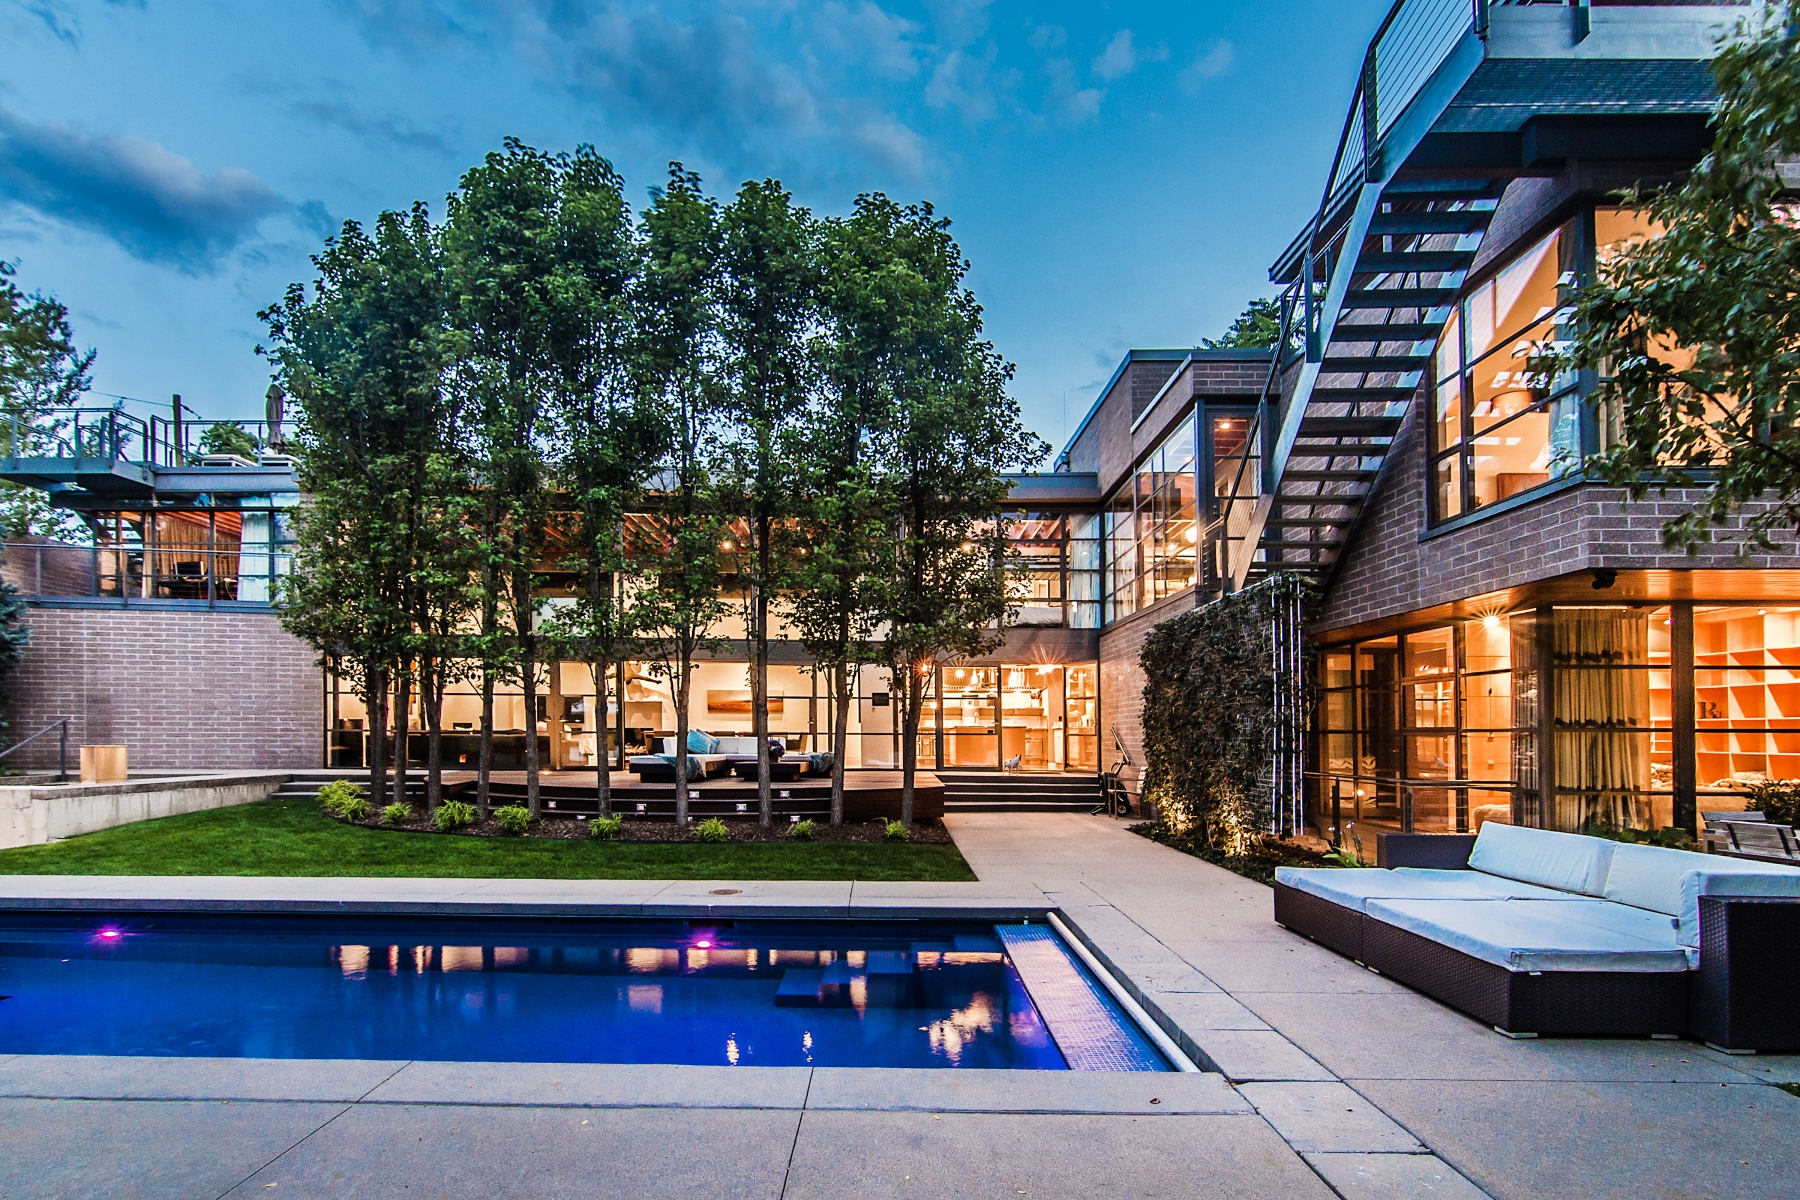 100 S. Marion Parkway listed by Wolfe Group of LIV Sotheby's International Realty.